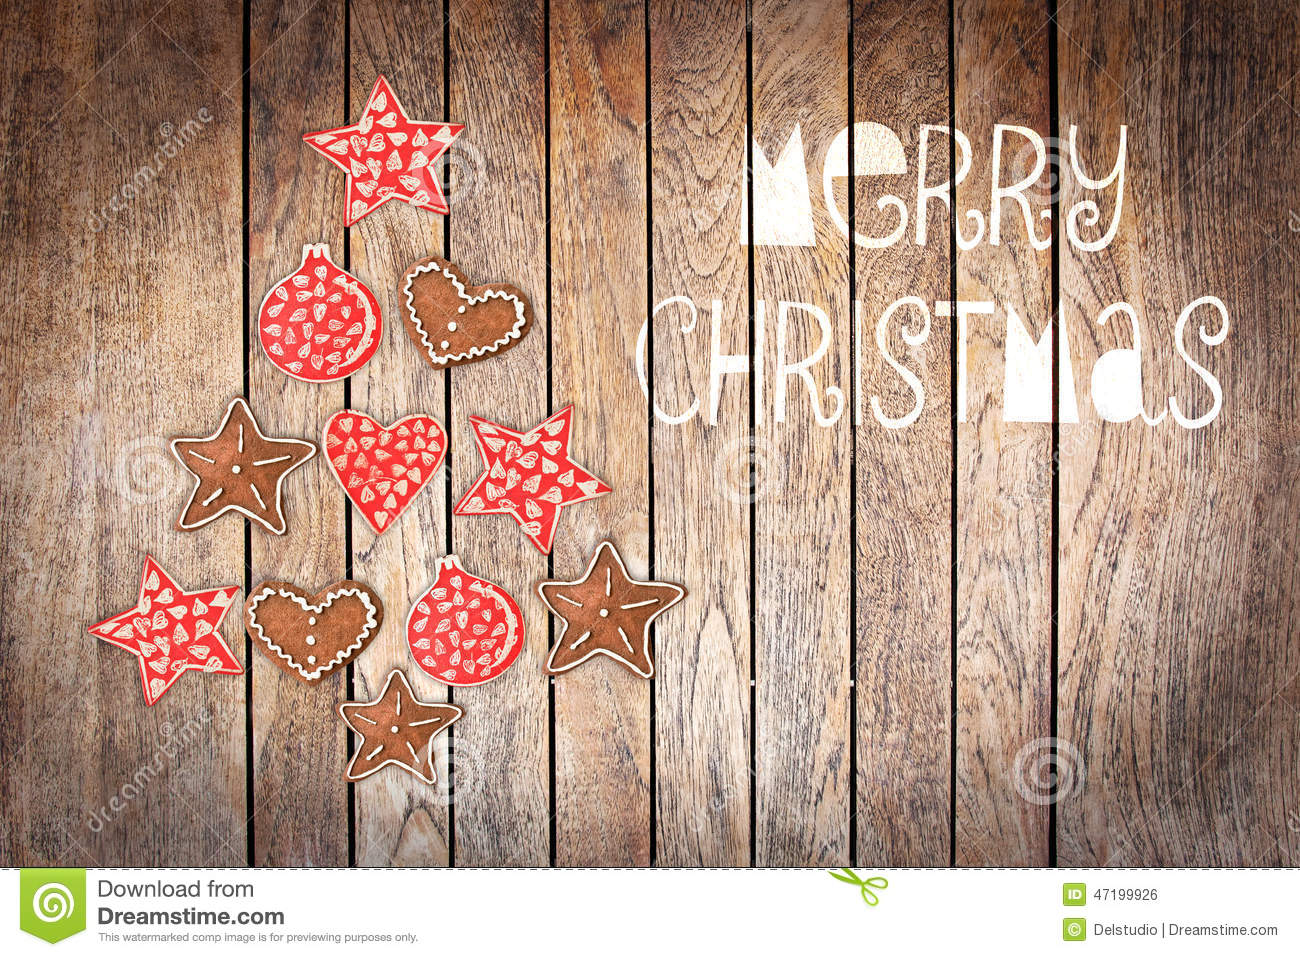 Merry Christmas Tree Made With Wooden Rustic Ornaments On Wood Background